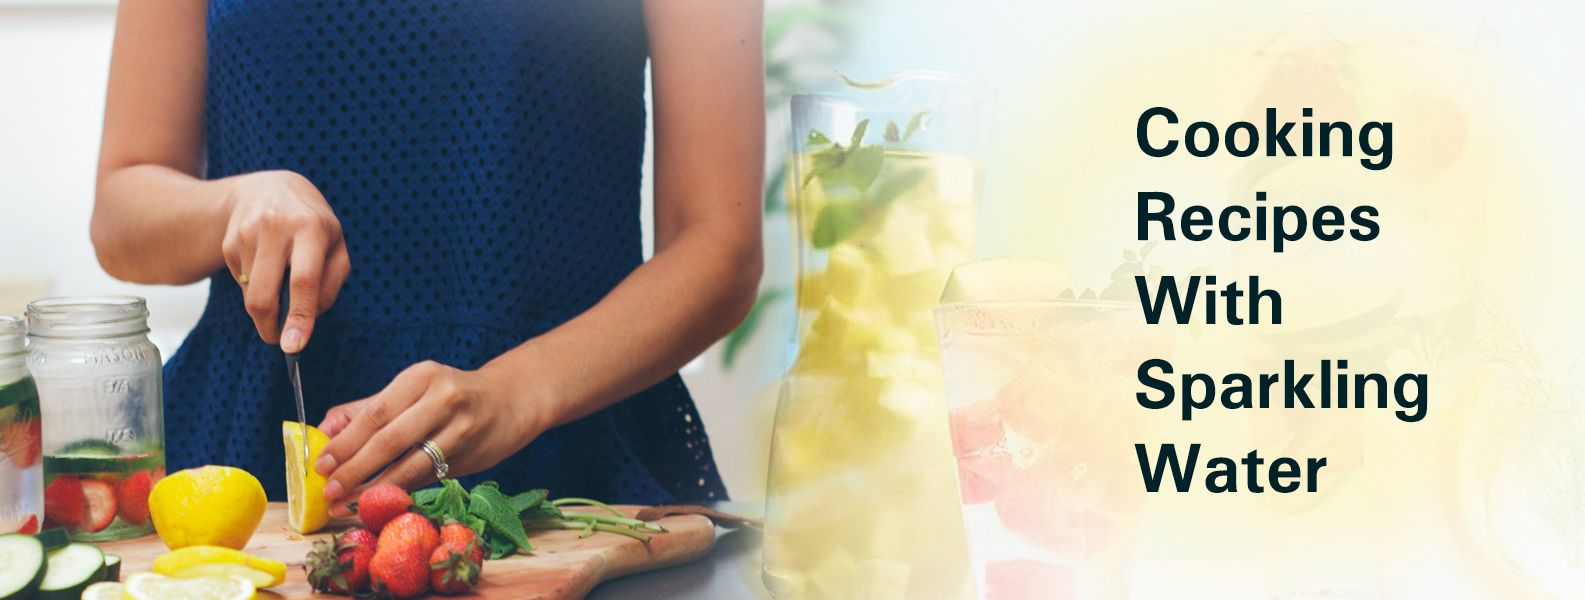 COOKING RECIPES WITH SPARKLING WATER